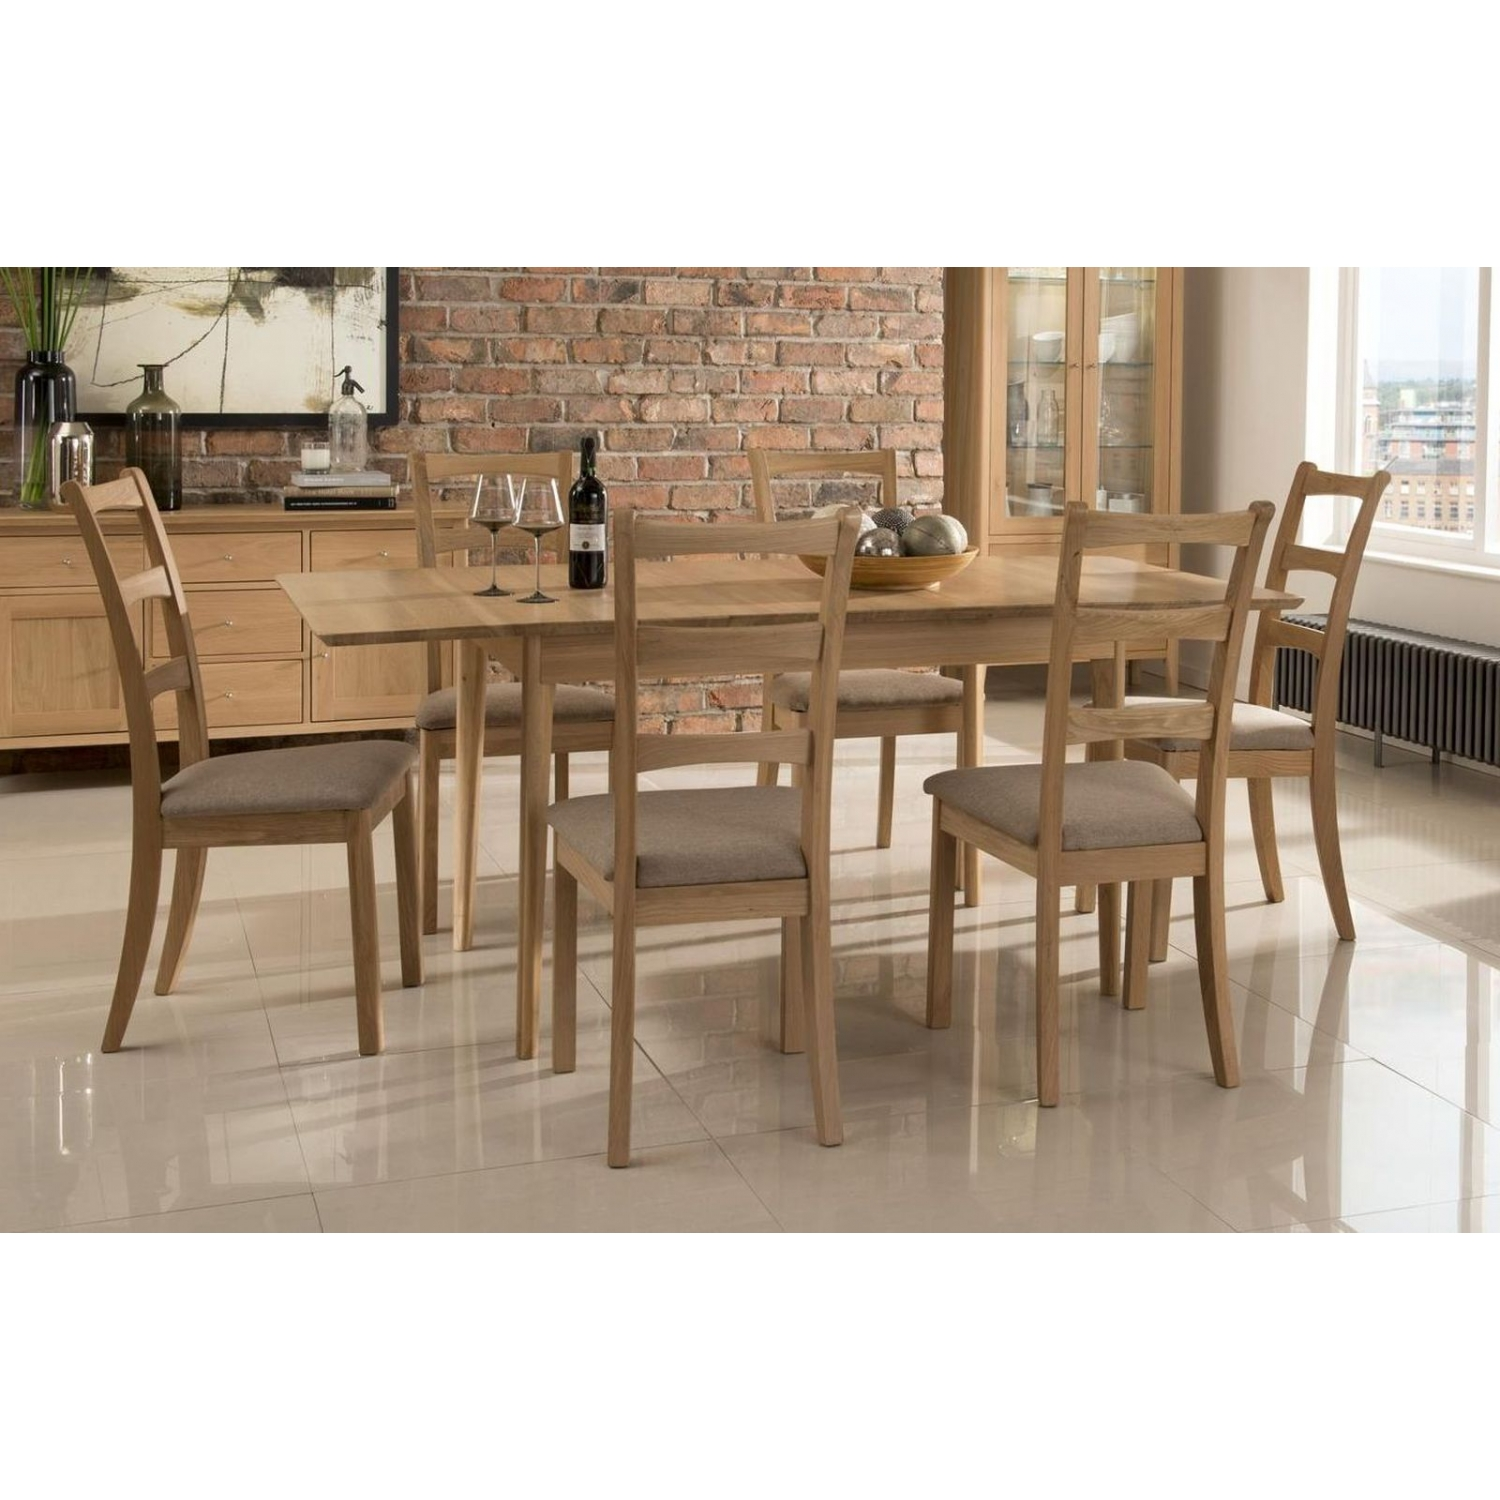 kemble solid oak furniture large extending dining table and six chairs